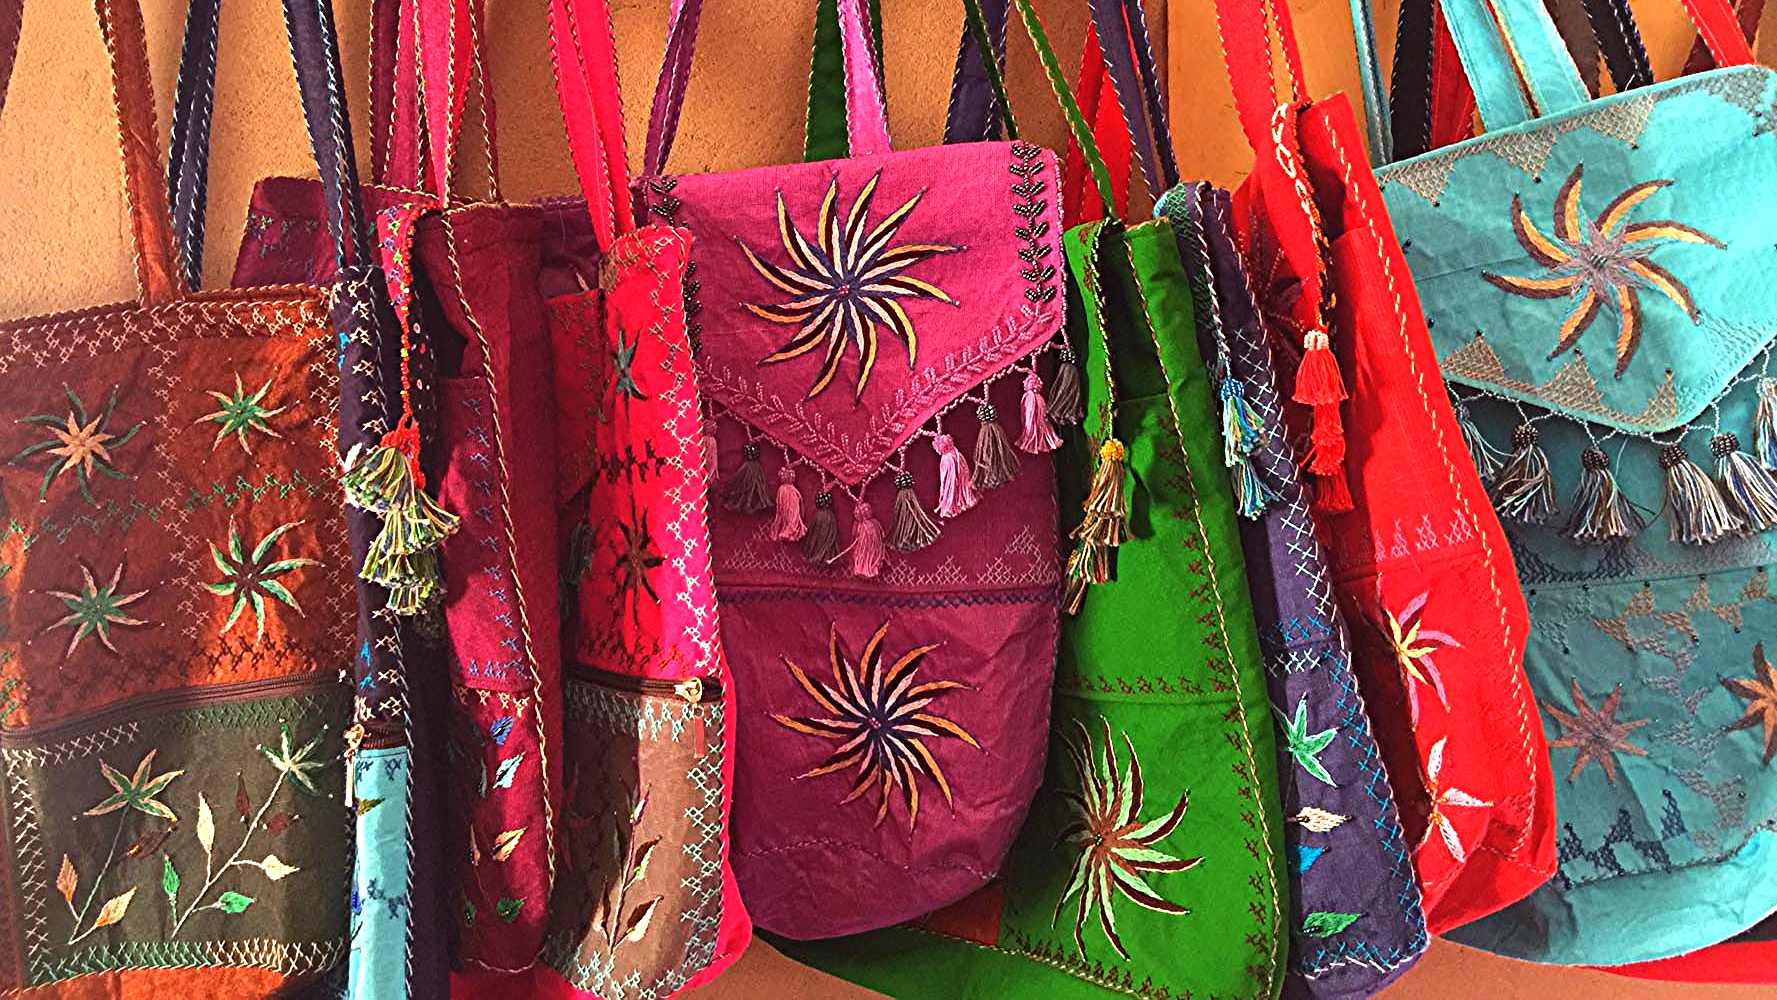 Bedouin beaded and embroidered bags